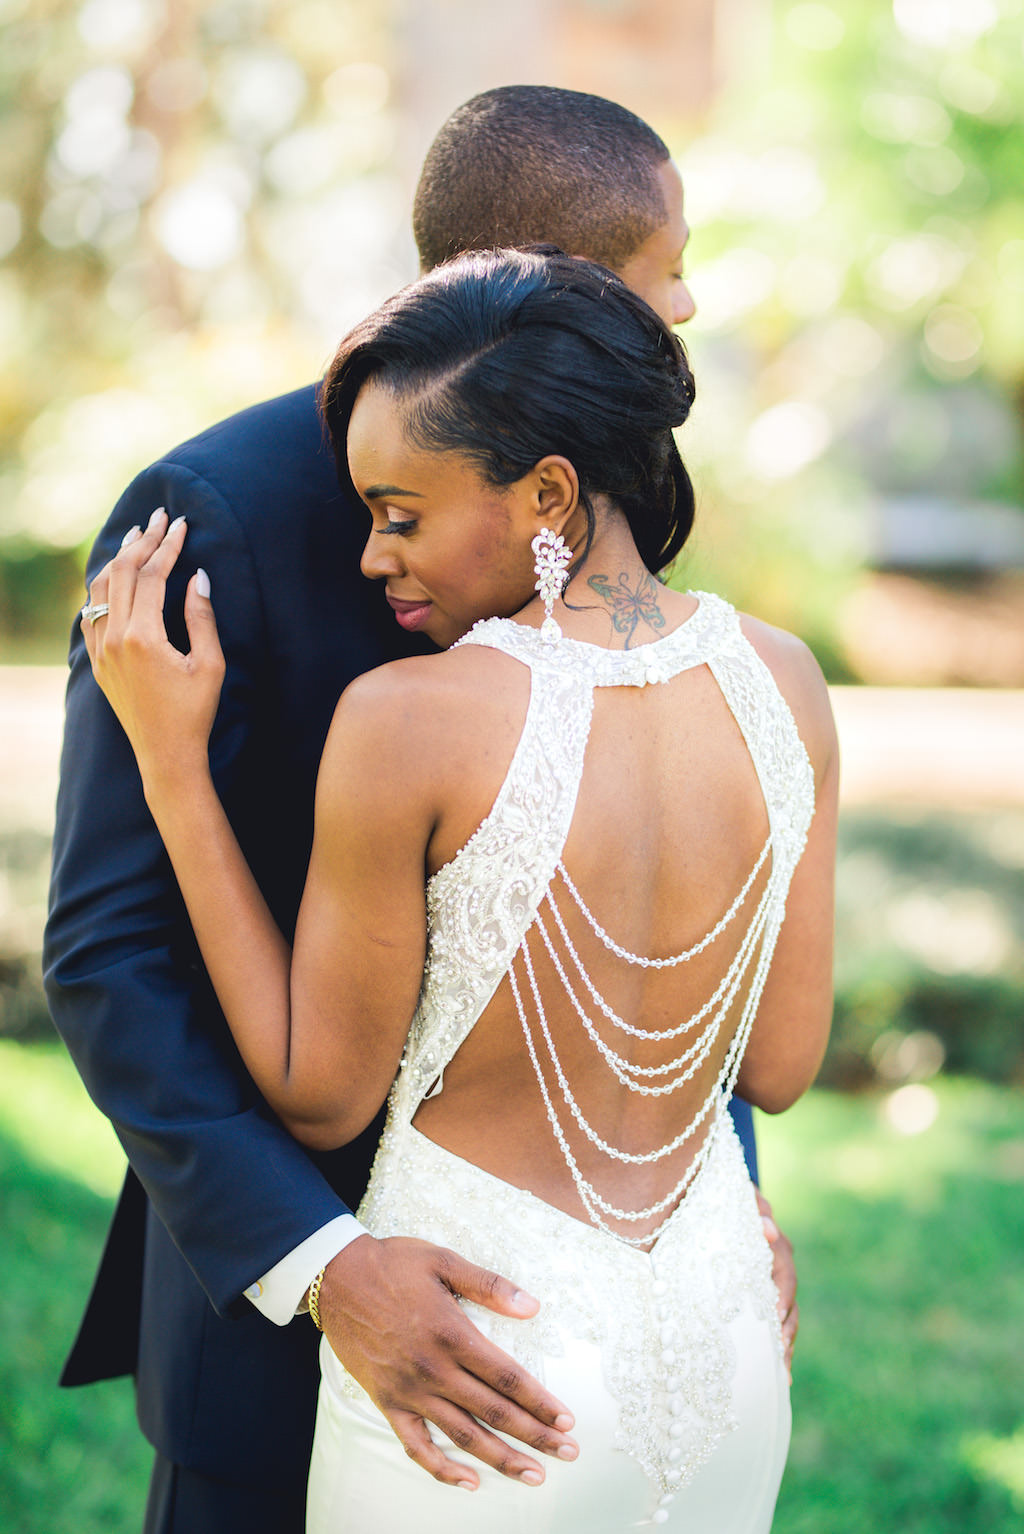 Outdoor Bride and Groom Portrait in V-neck Rhinestone Beaded Bodice and with Keyhole Back and Beaded Detailing Wedding Dress | Tampa Wedding Dress Shop Truly Forever Bridal